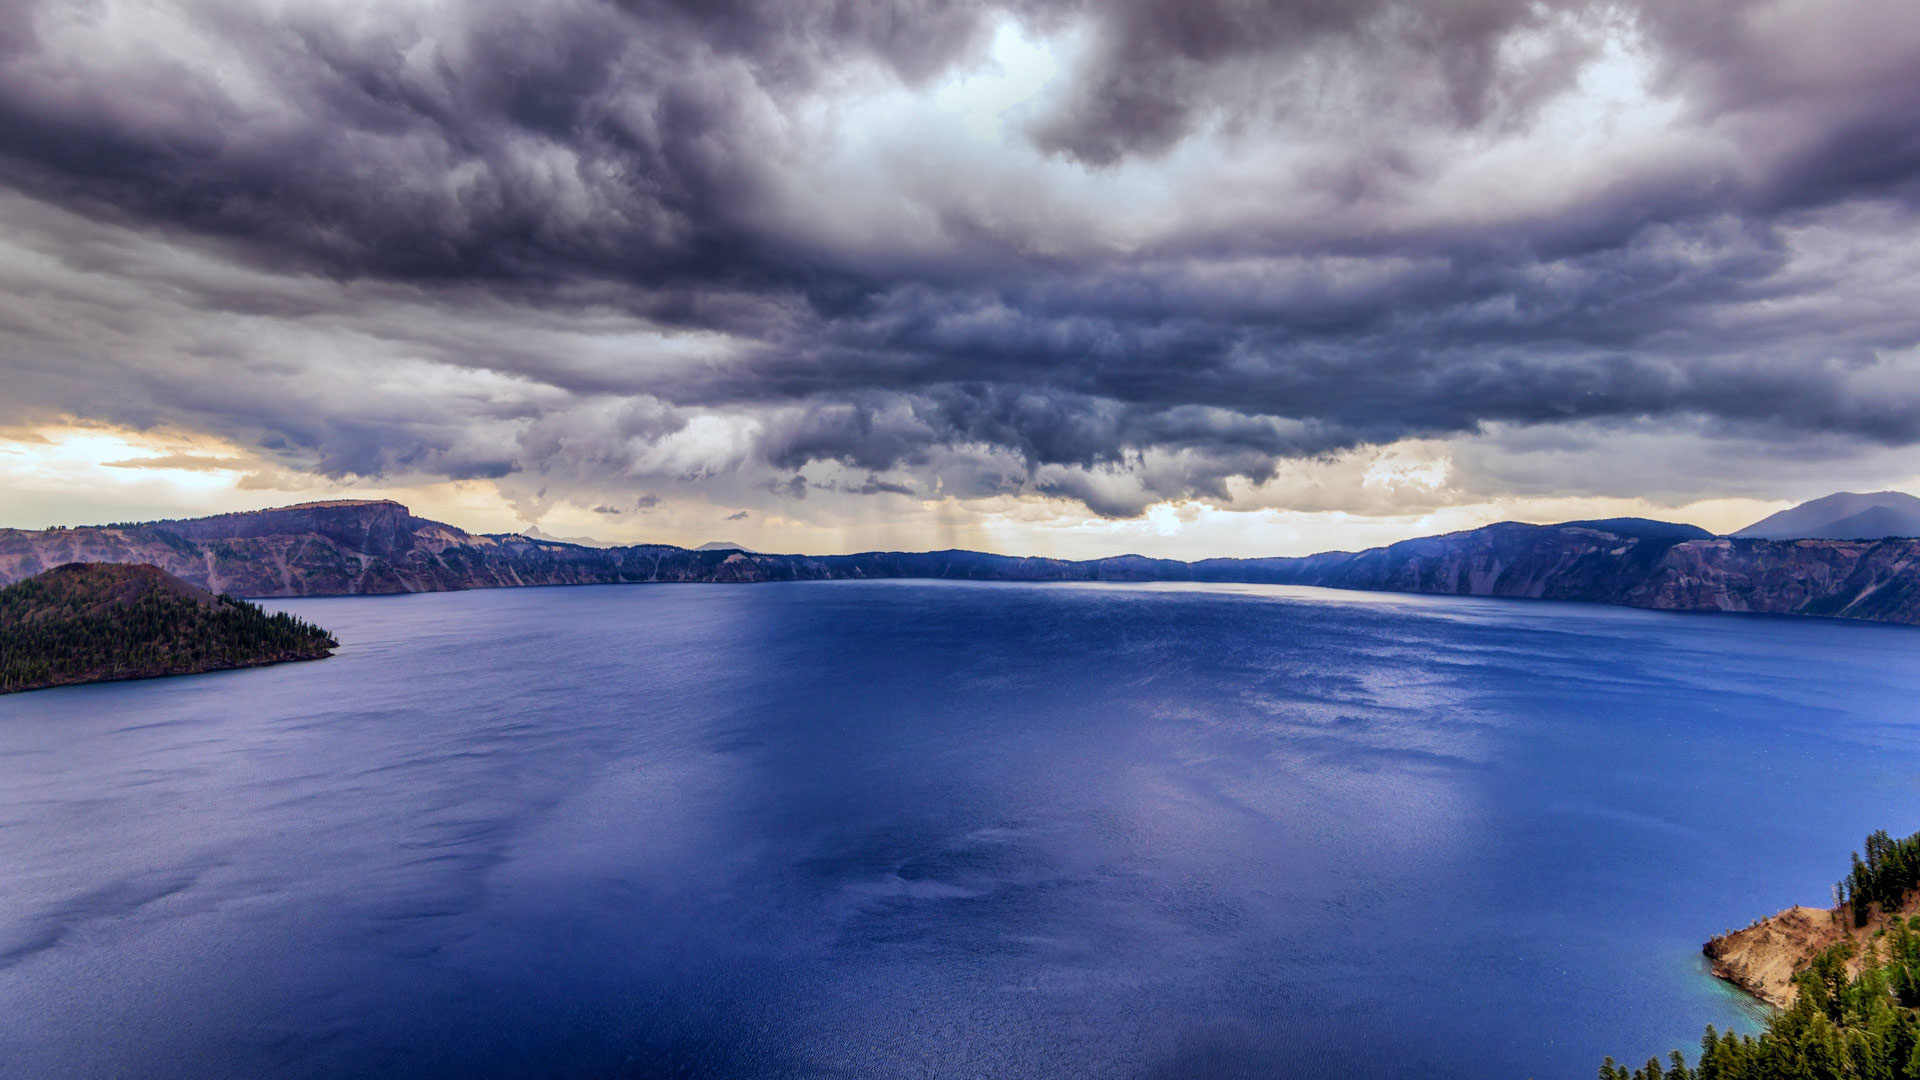 Storm clouds over Crater Lake National Park, Oregon (© Joseph Giacalone/SuperStock)